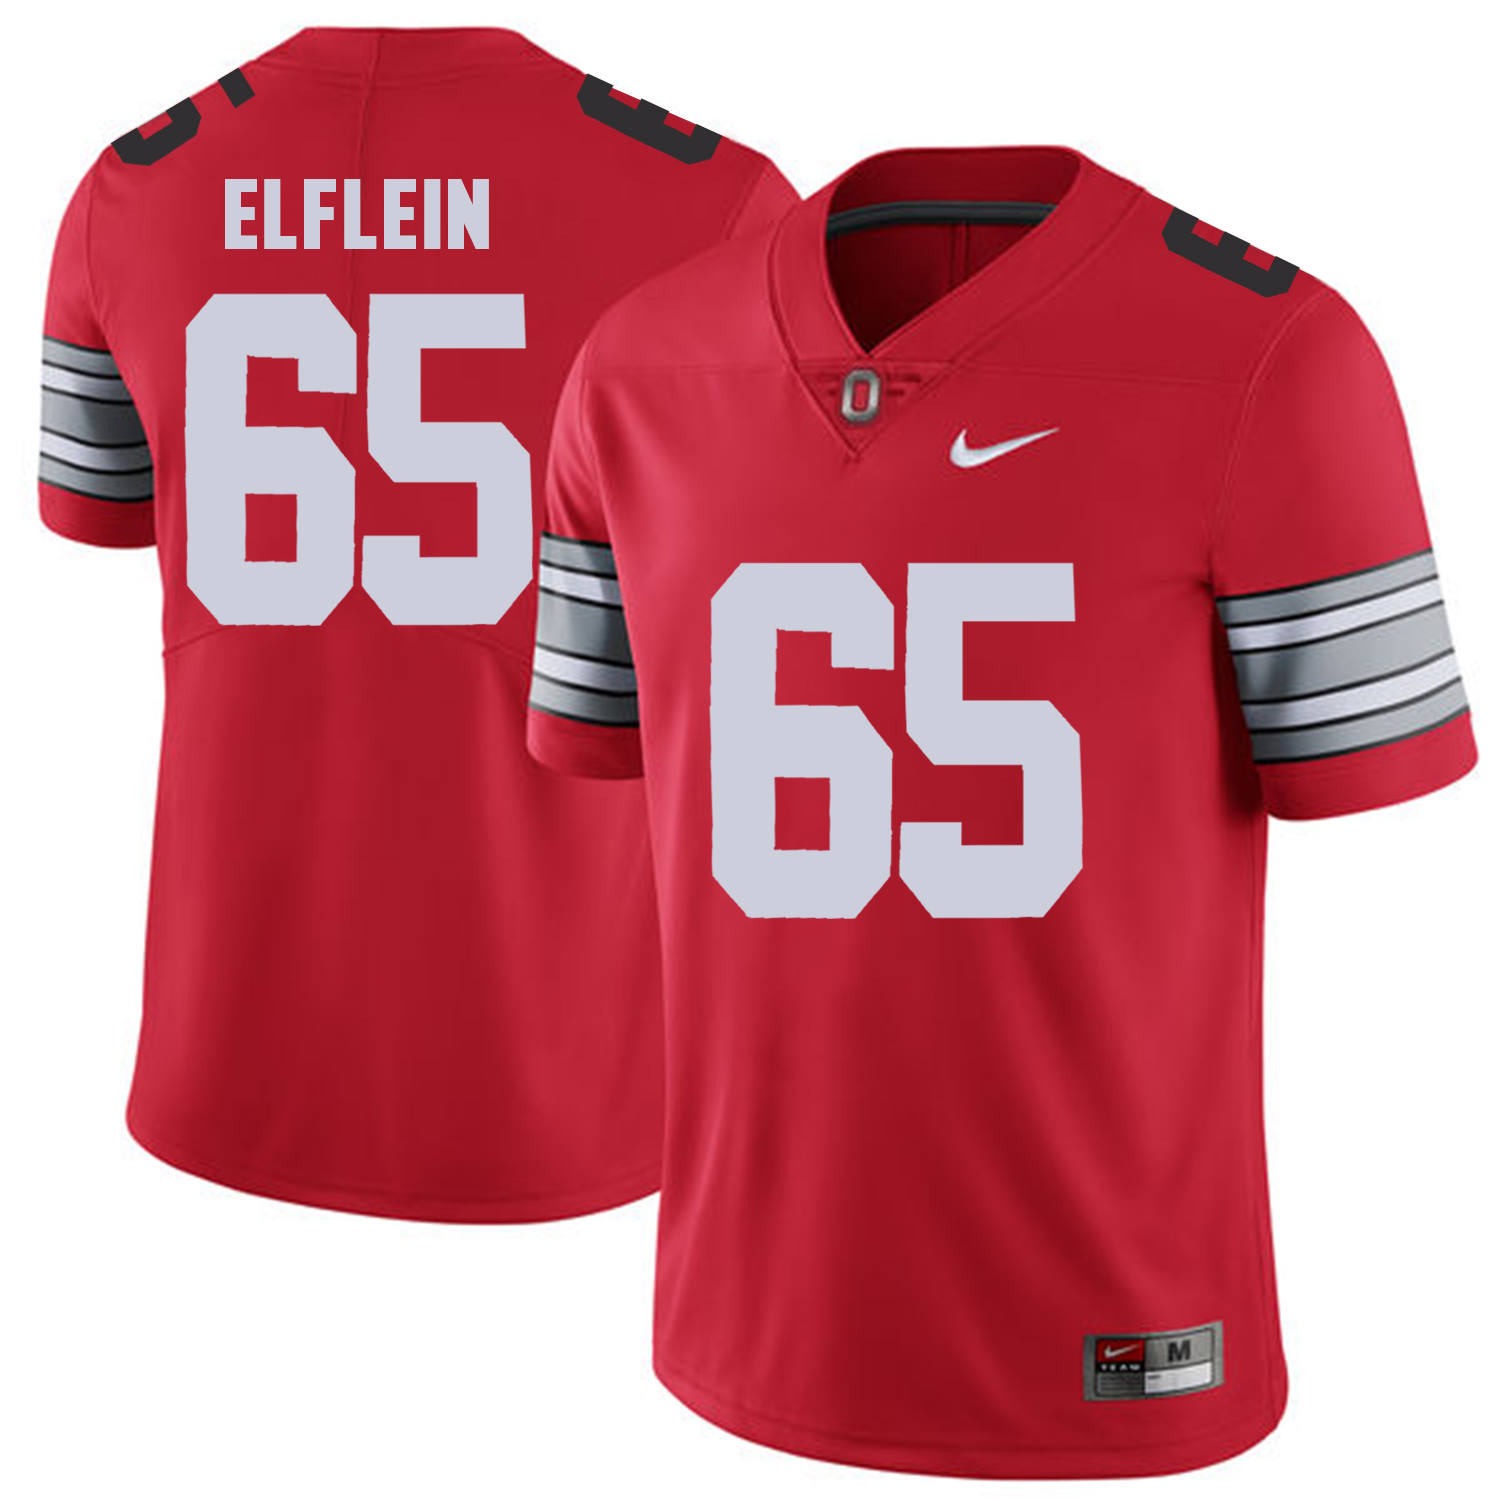 Men Ohio State 65 Elflein Red Customized NCAA Jerseys